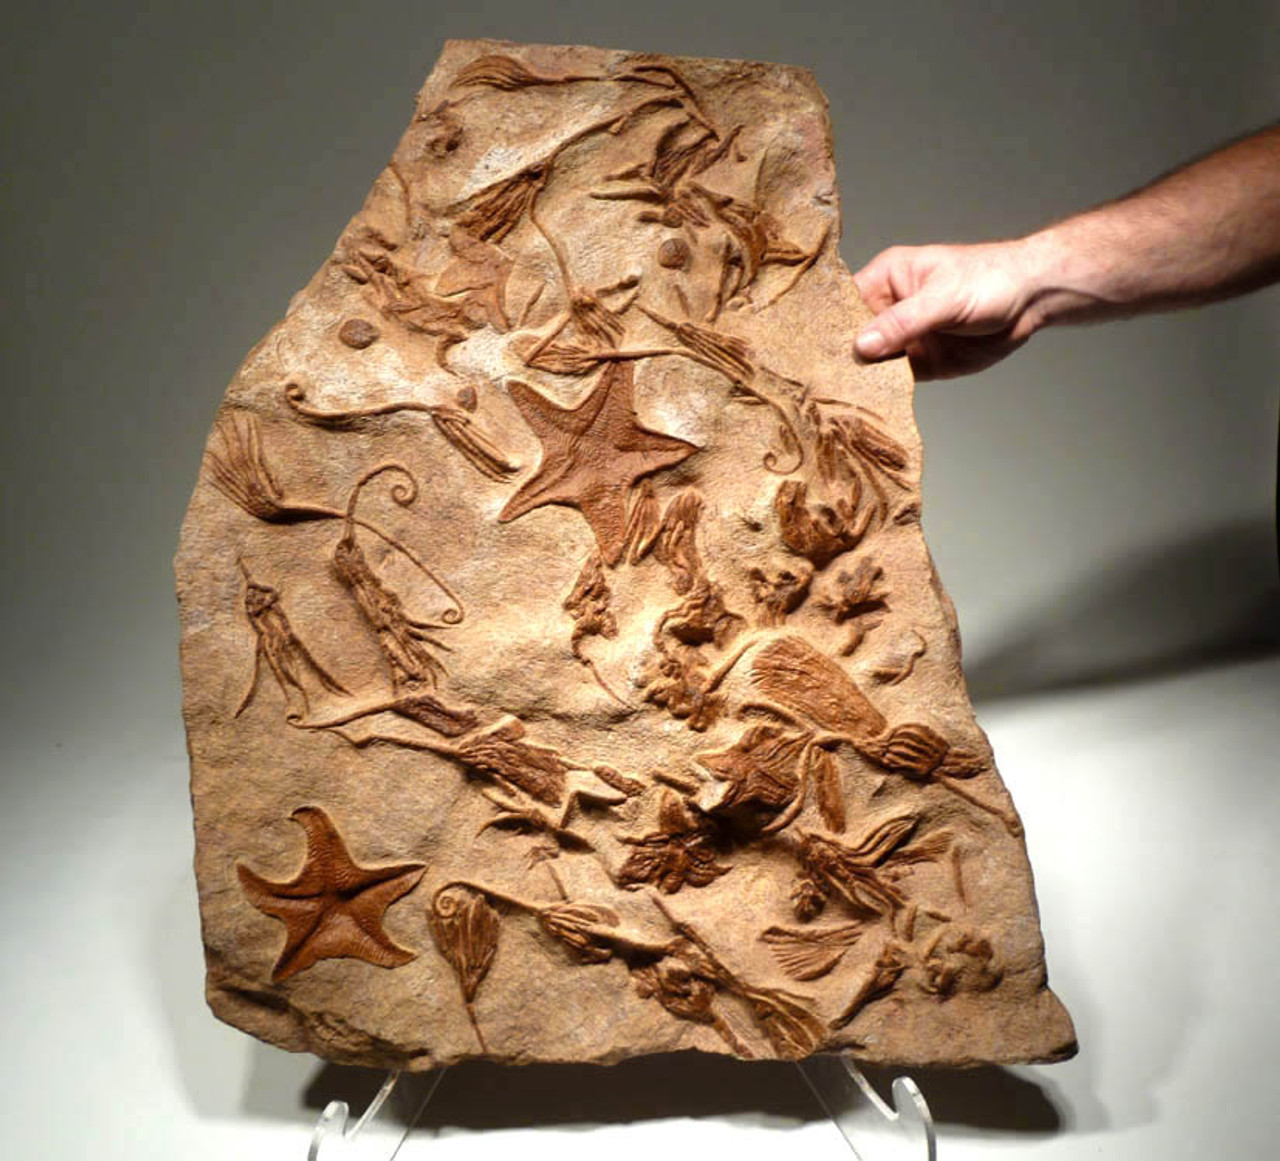 SF025 - RARE MUSEUM GRADE GIANT PREHISTORIC STARFISH AND SEA LILY CRINOID FOSSIL SLAB OF A MASS EXTINCTION EVENT